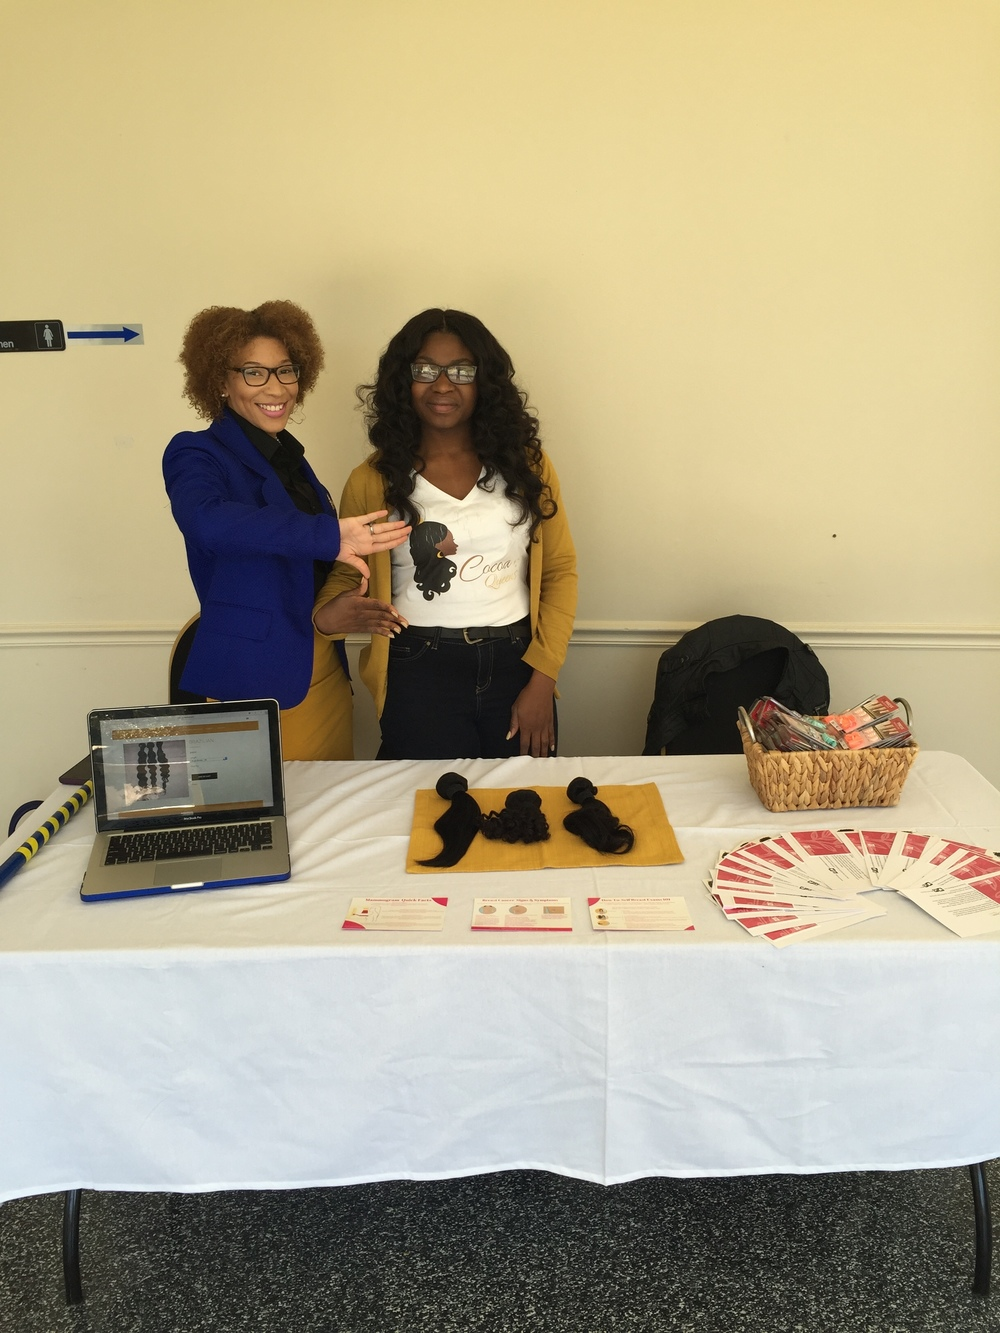 Cocoa Queens pop up shop at Bowie State University